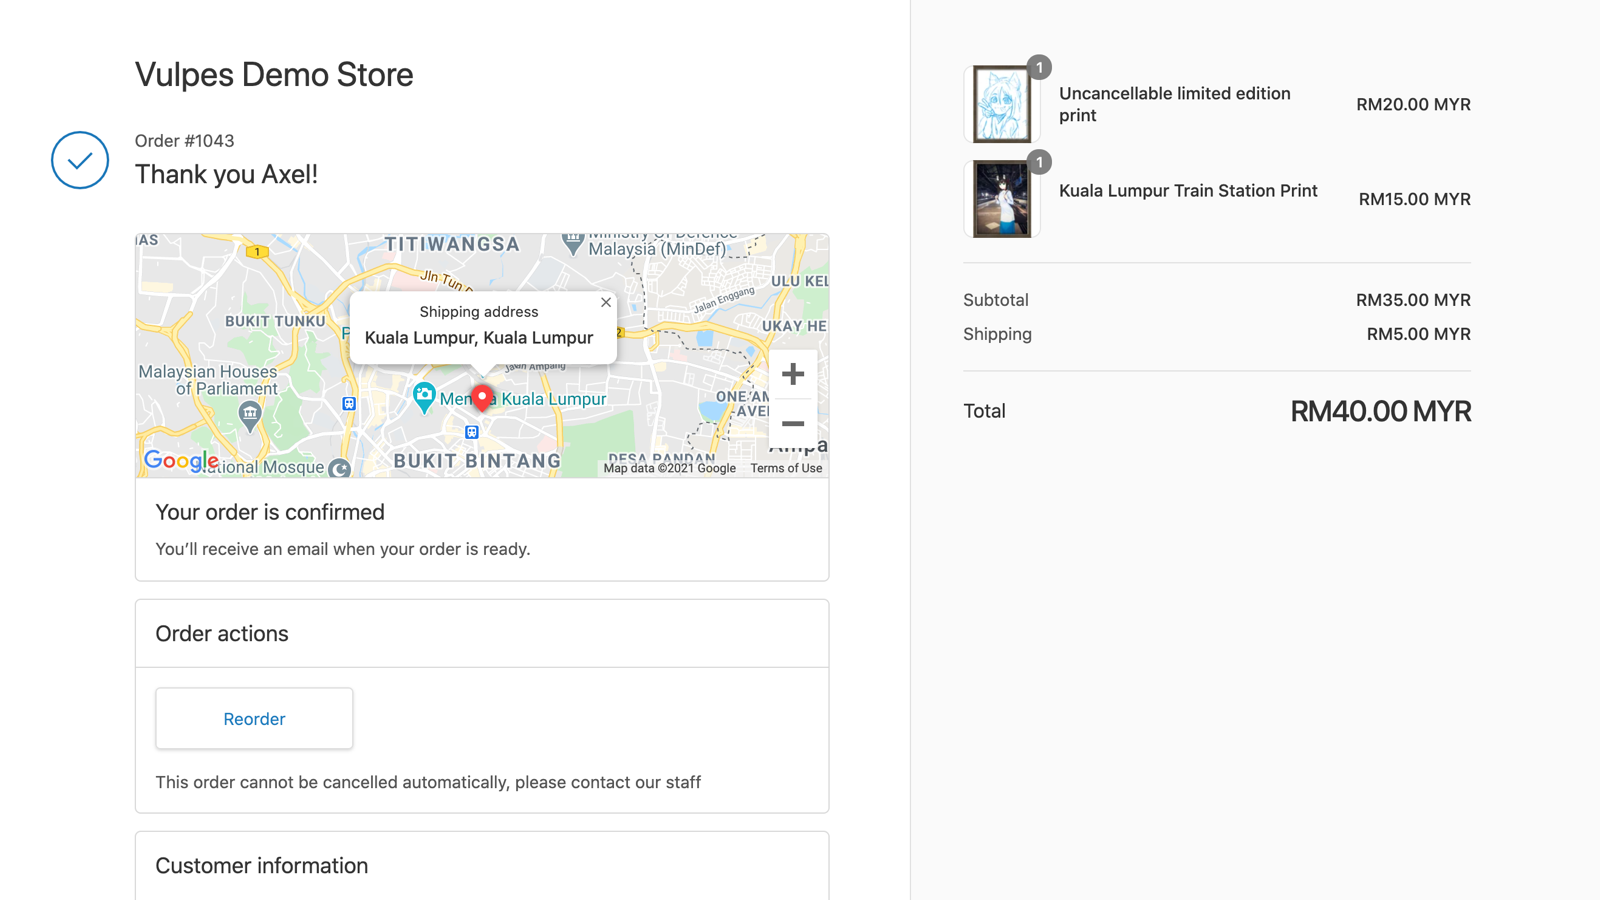 Manually disable customer cancellation on specific orders